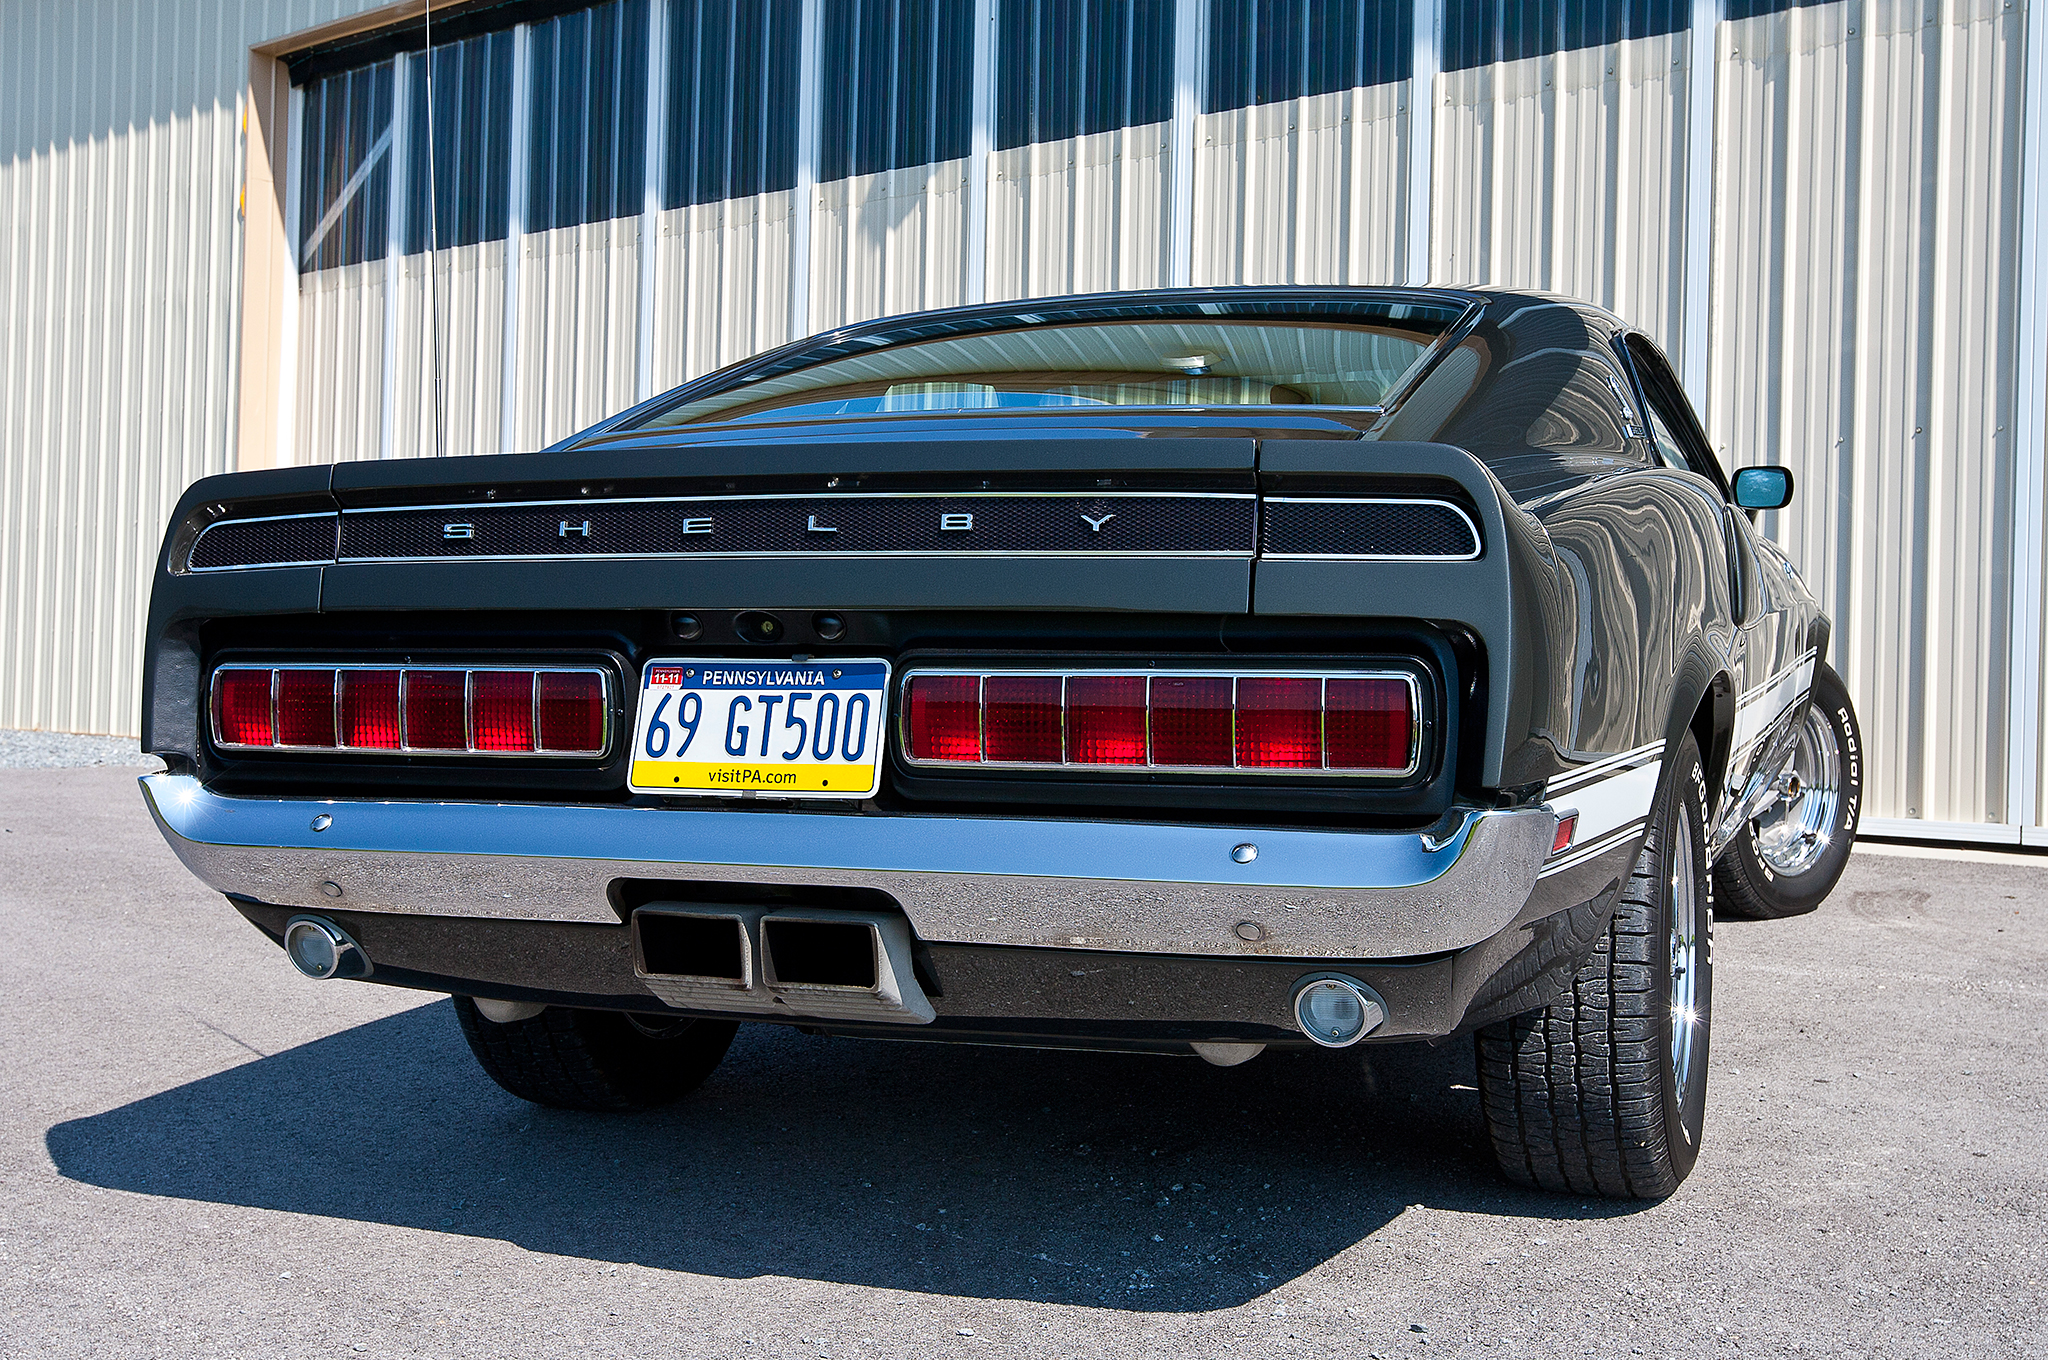 The Shelby's taillights were removed while it was in storage to keep eager buyers at bay, but after a complete restoration they're back where they should be. The tires today are P235/60R15 BFGoodrich Radial T/As.